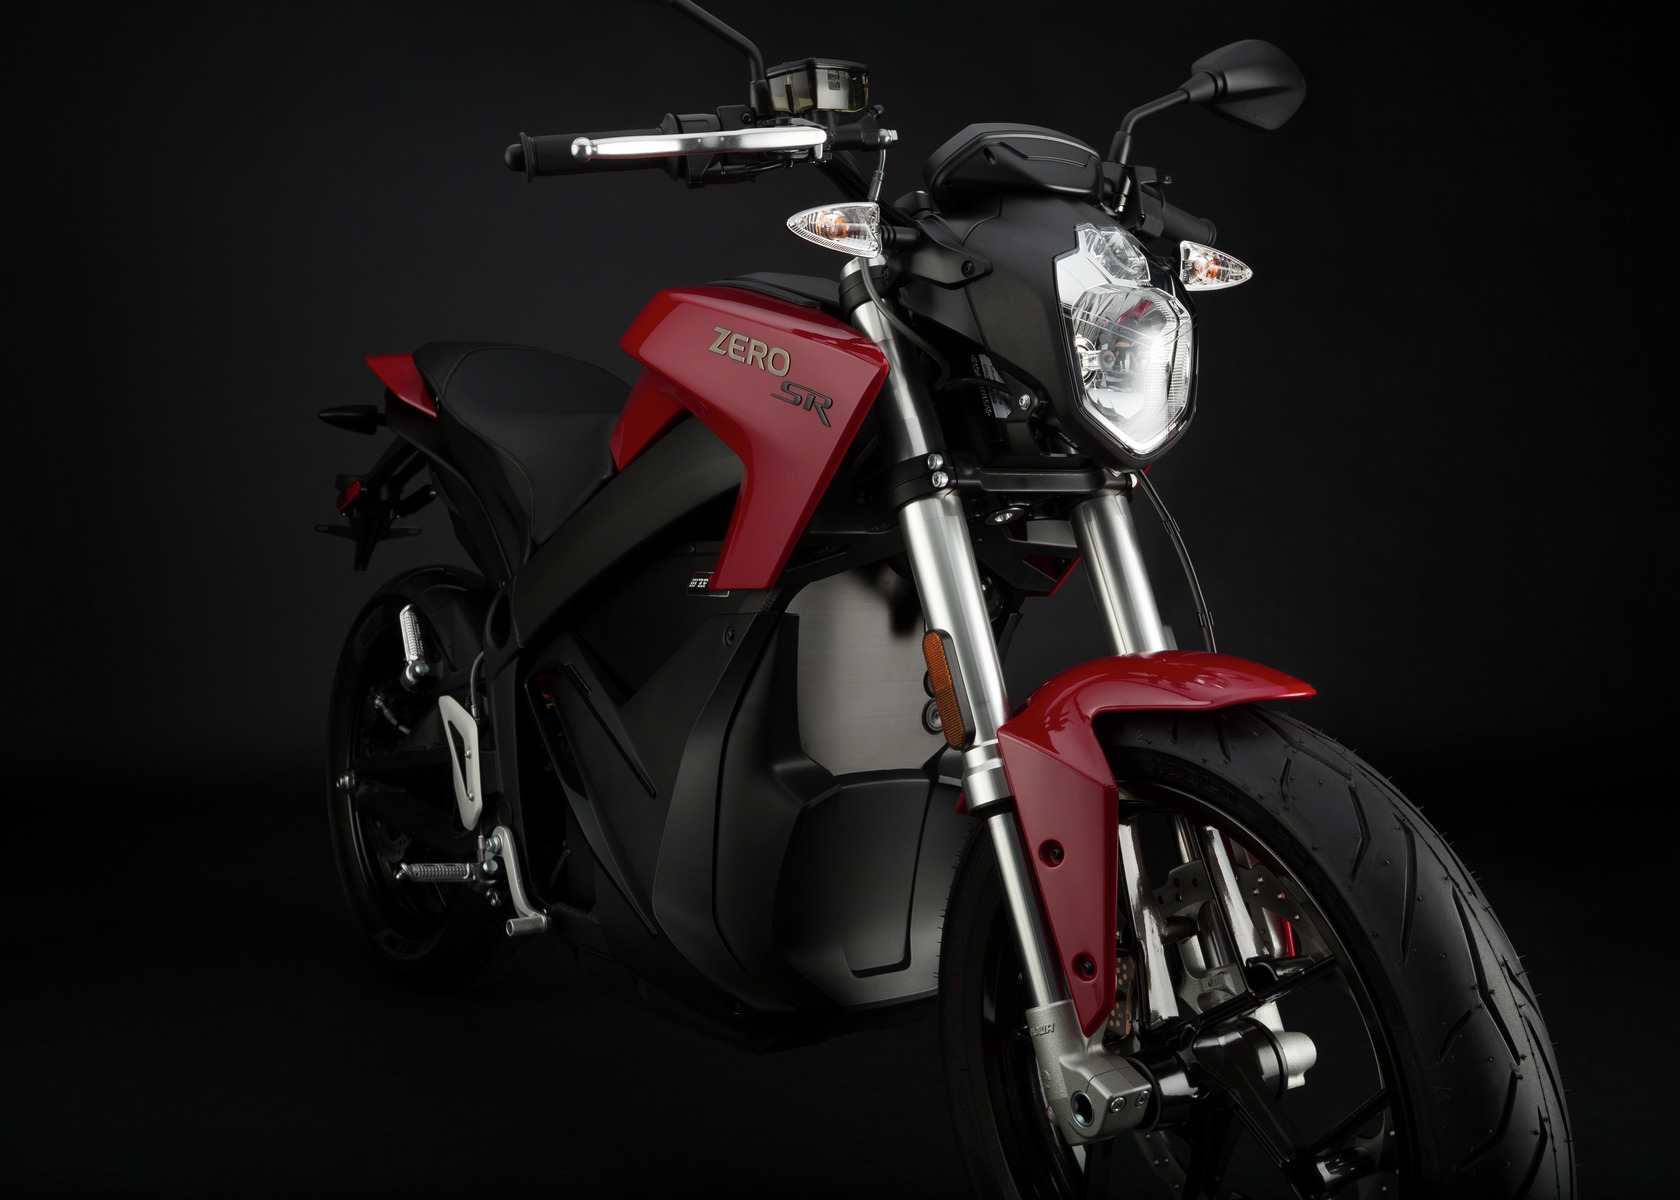 2016 Zero SR Electric Motorcycle: Front Fork